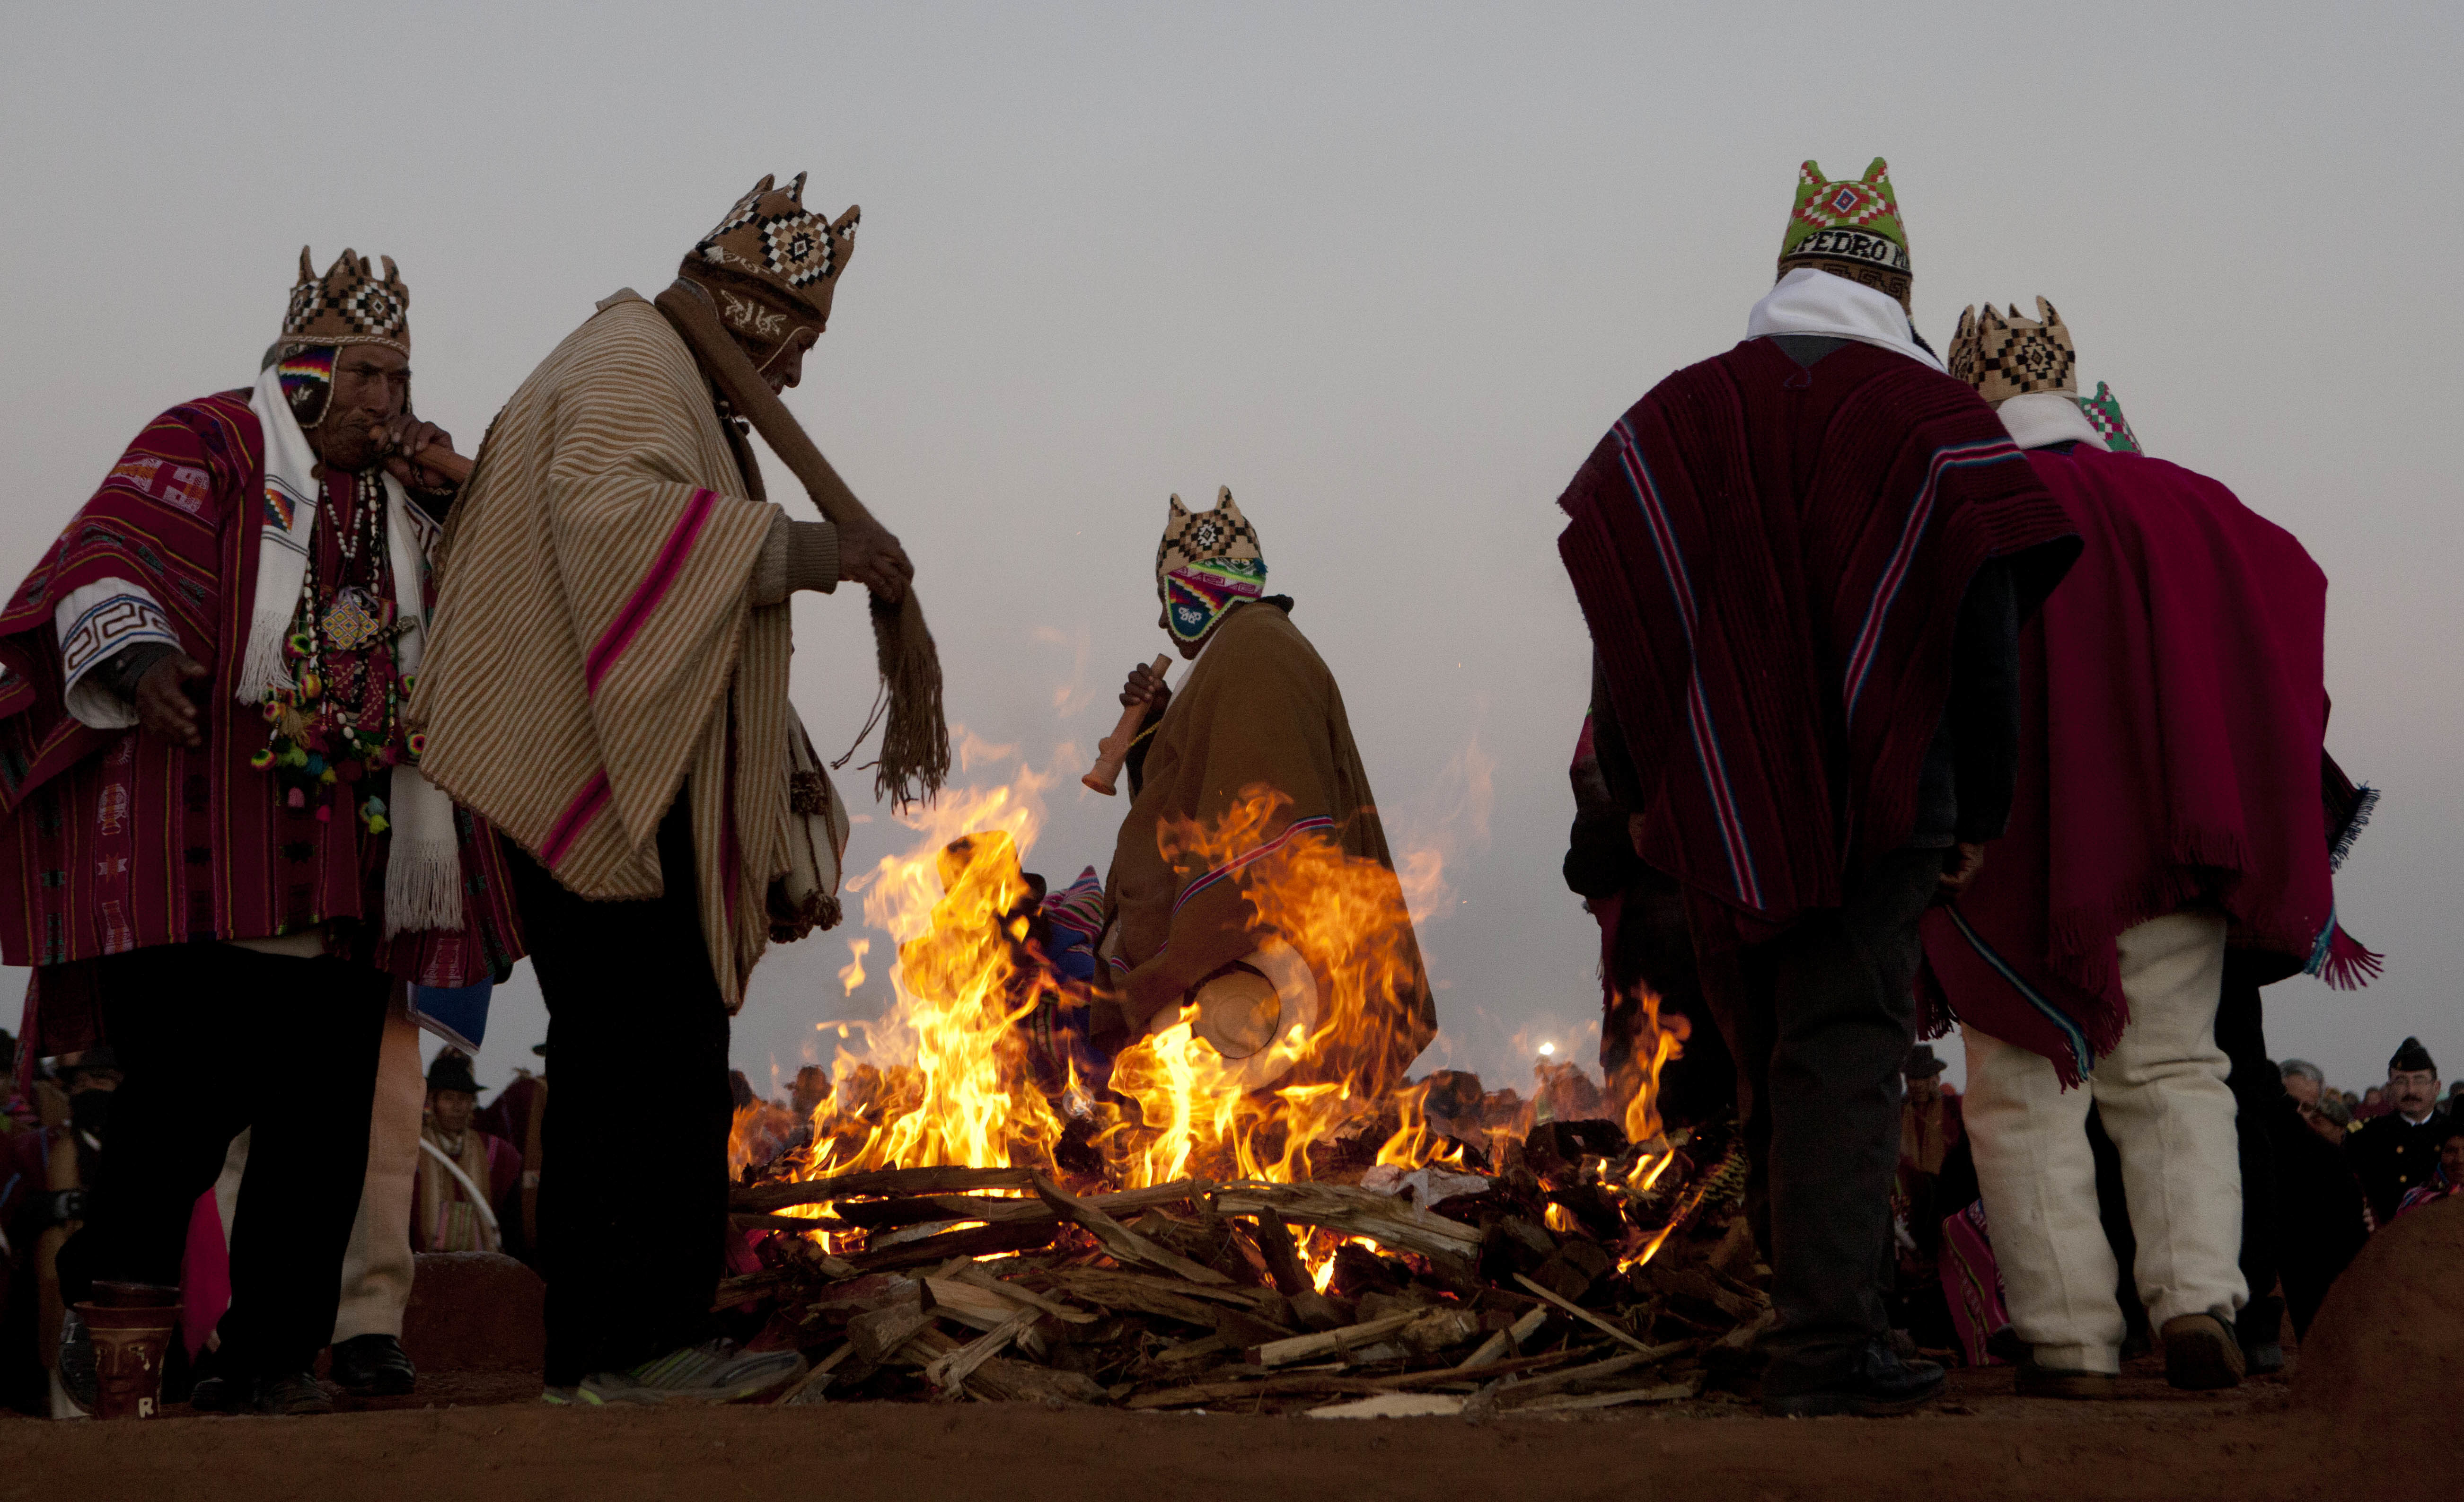 Andean religious leaders perform a New Year's ritual at the ruins of the ancient civilization of Tiwanaku, Bolivia, early Wednesday, June 21, 2017. Bolivia's Aymara Indians are celebrating the year 5,525 as well as the Southern Hemisphere's winter solstice, which marks the start of a new agricultural cycle. (AP Photo/Juan Karita)